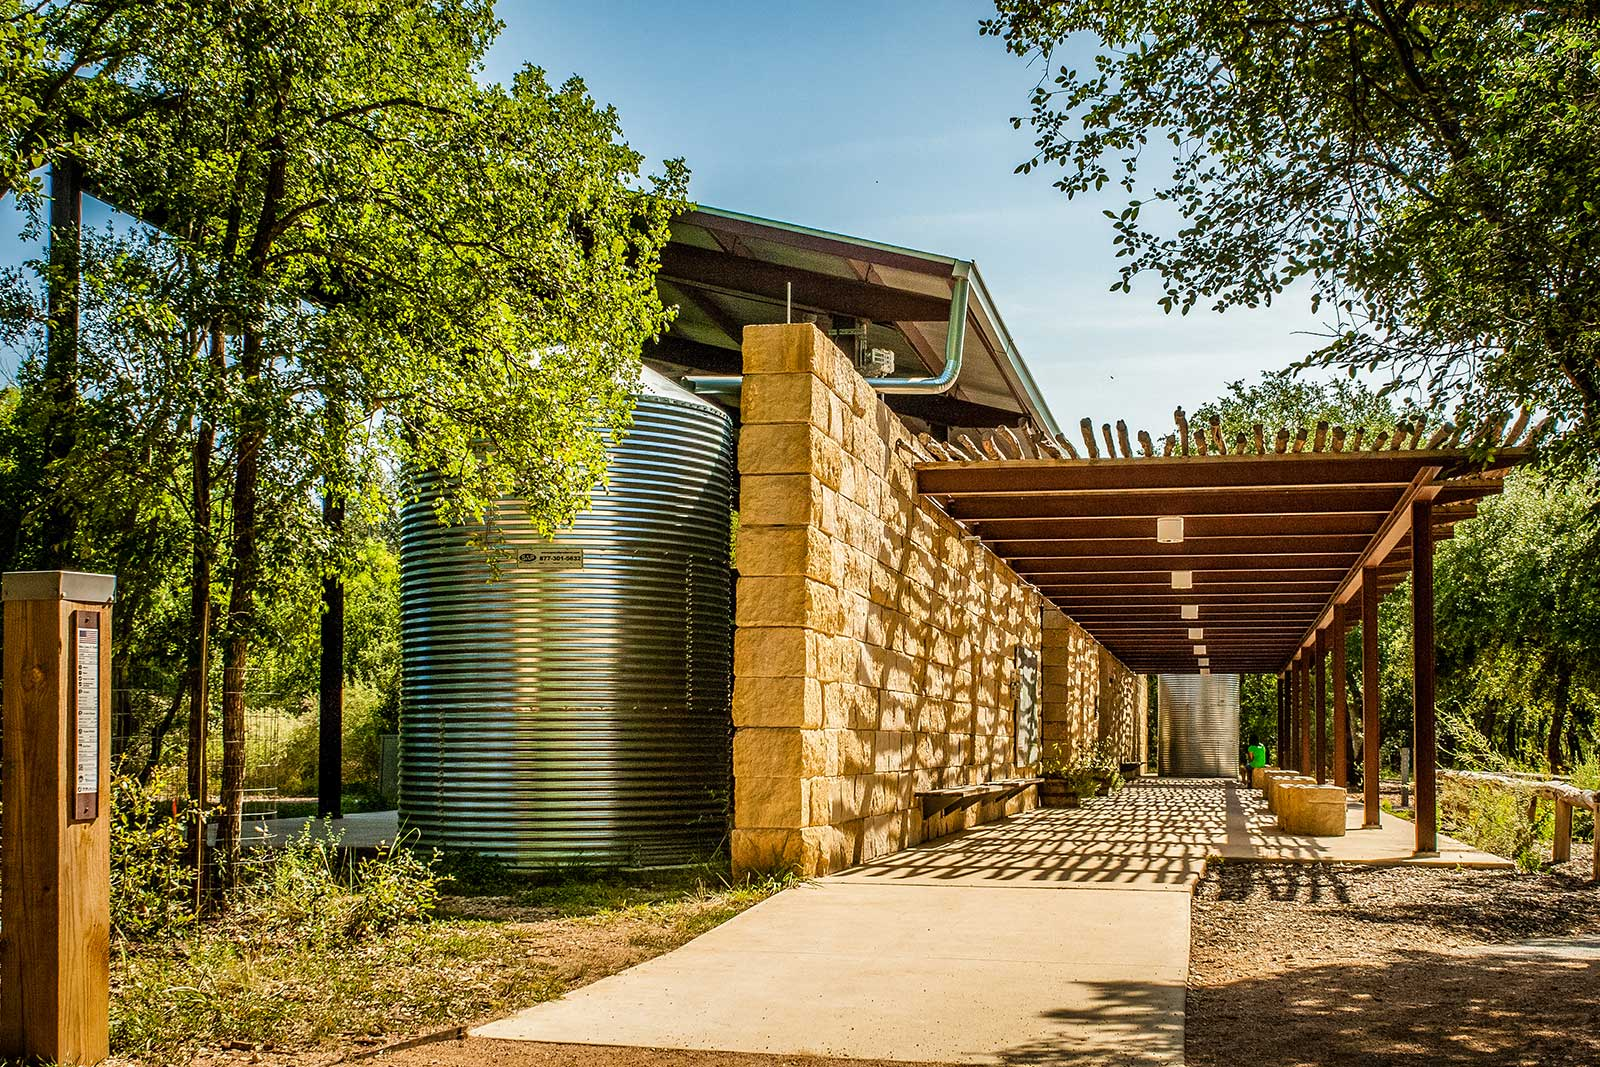 Salado Outdoor Classroom Pavilion Architect Magazine